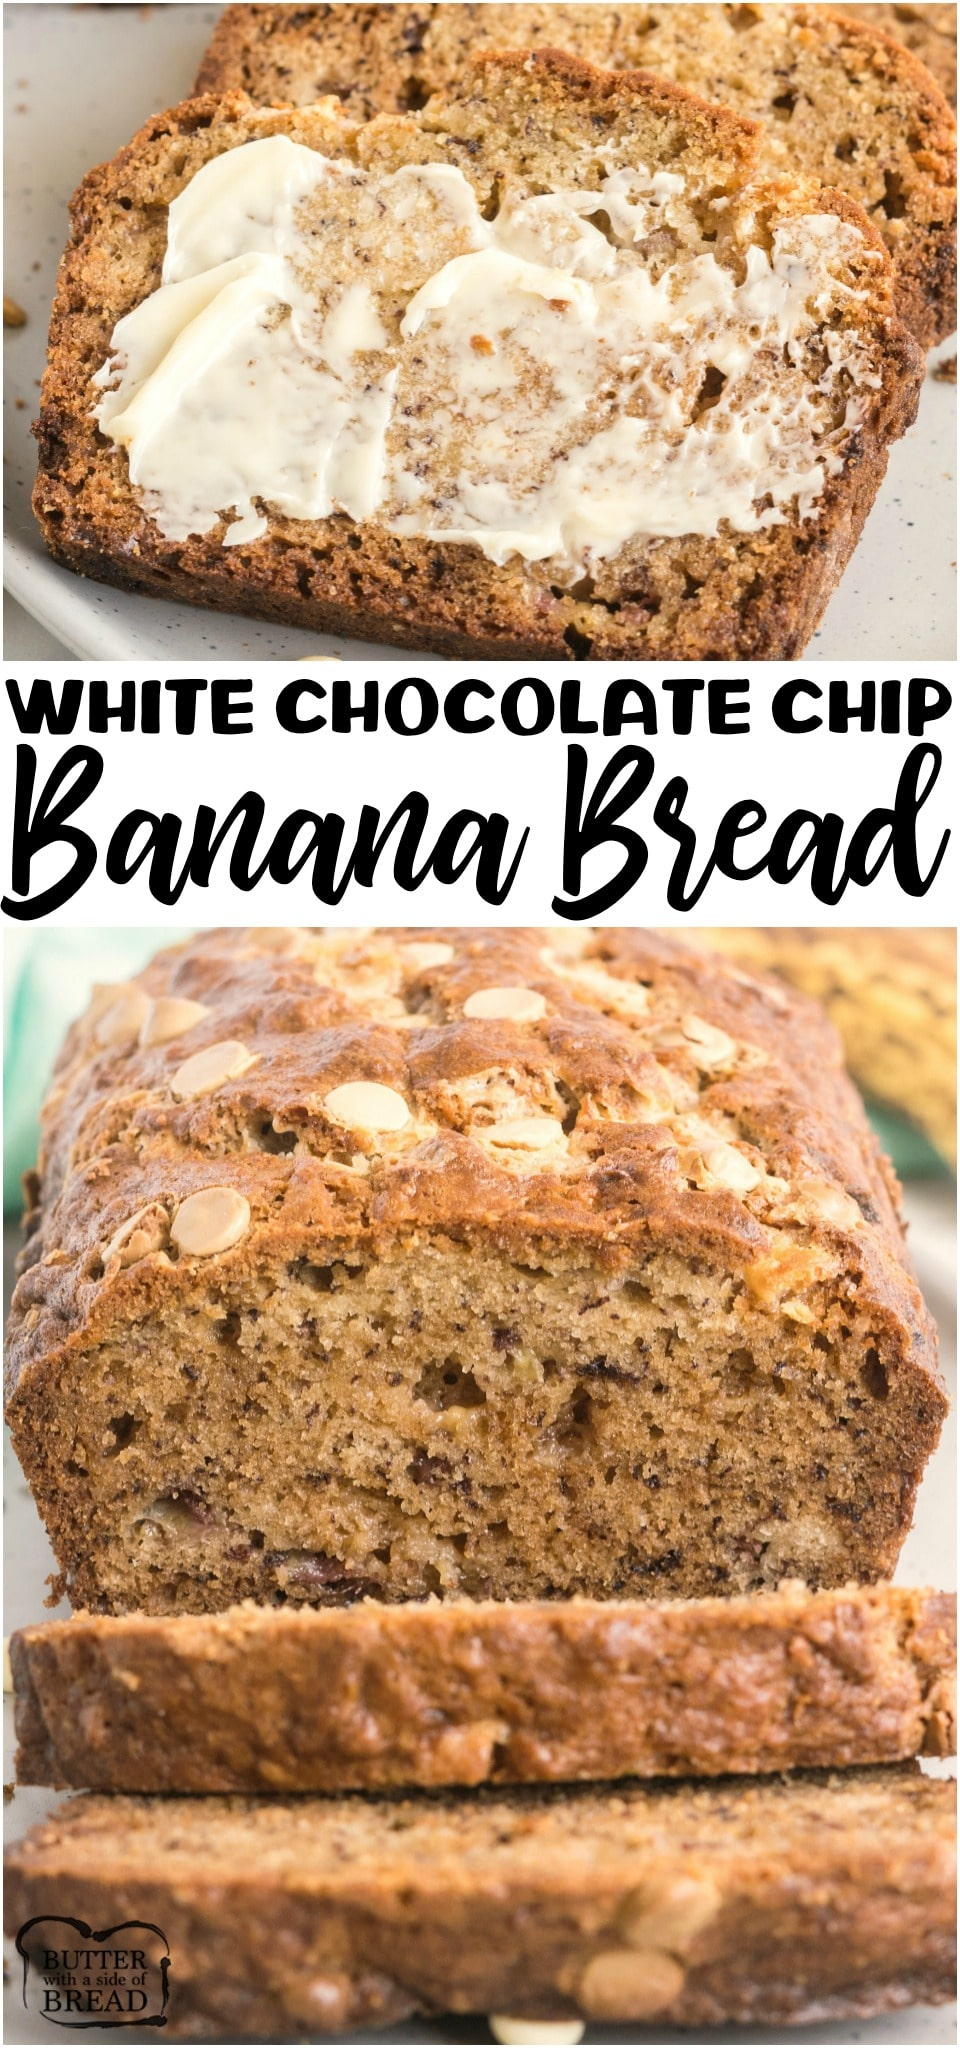 White Chocolate Chip Banana Bread is an incredible variation on classic banana bread!Sweet white chocolate and banana blending together to create an amazing banana bread recipe you need to try!